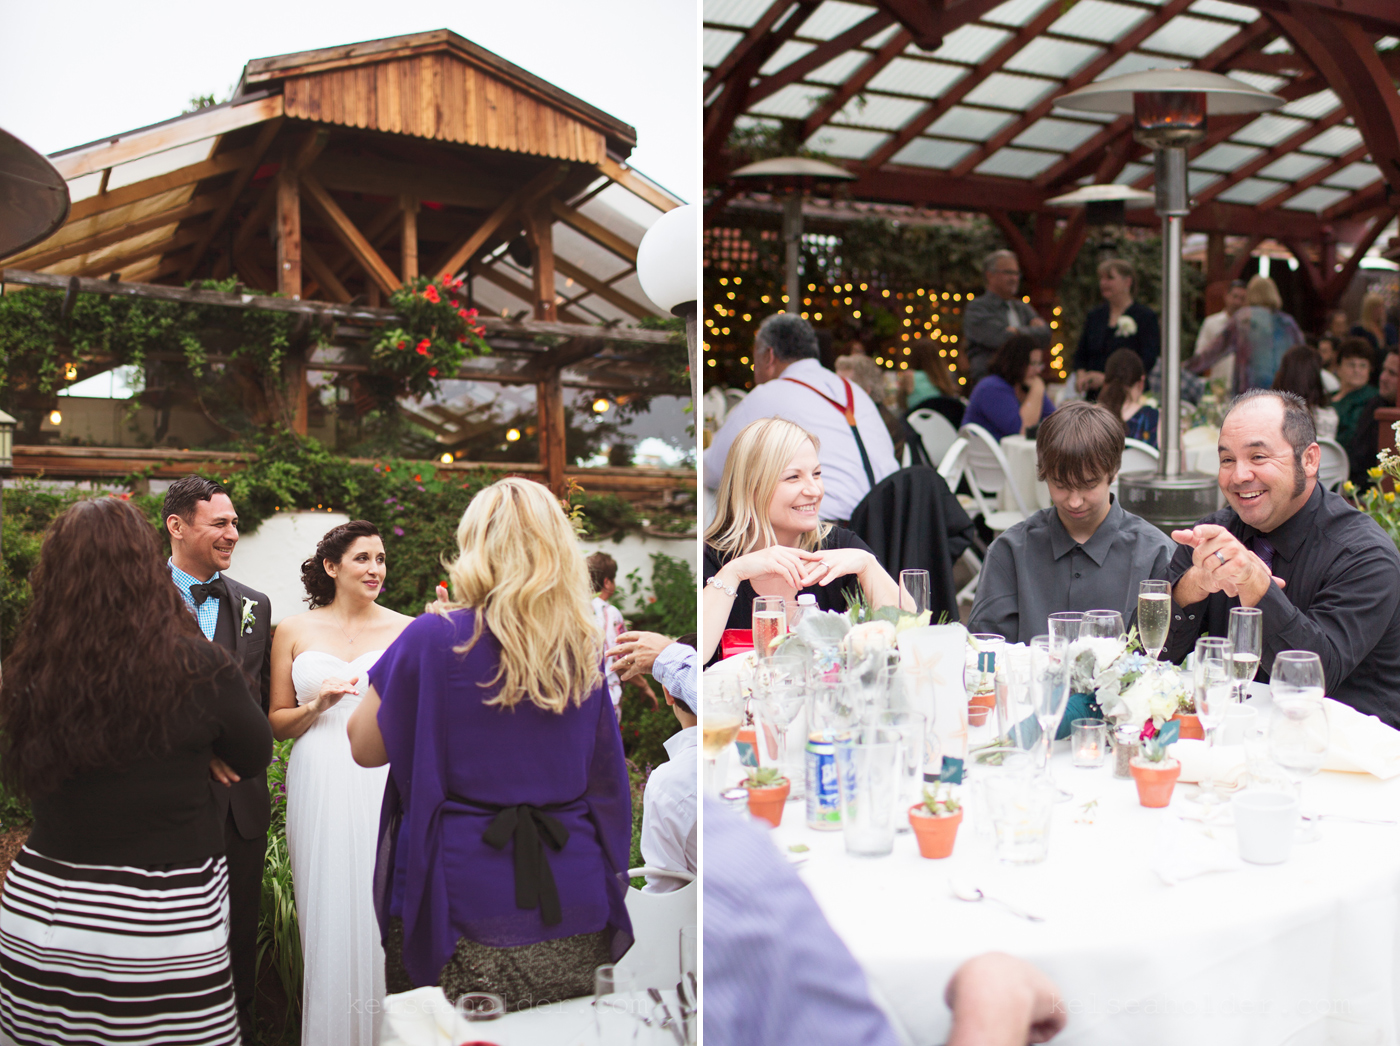 kelsea_holder_eco_outdoor_california_wedding069